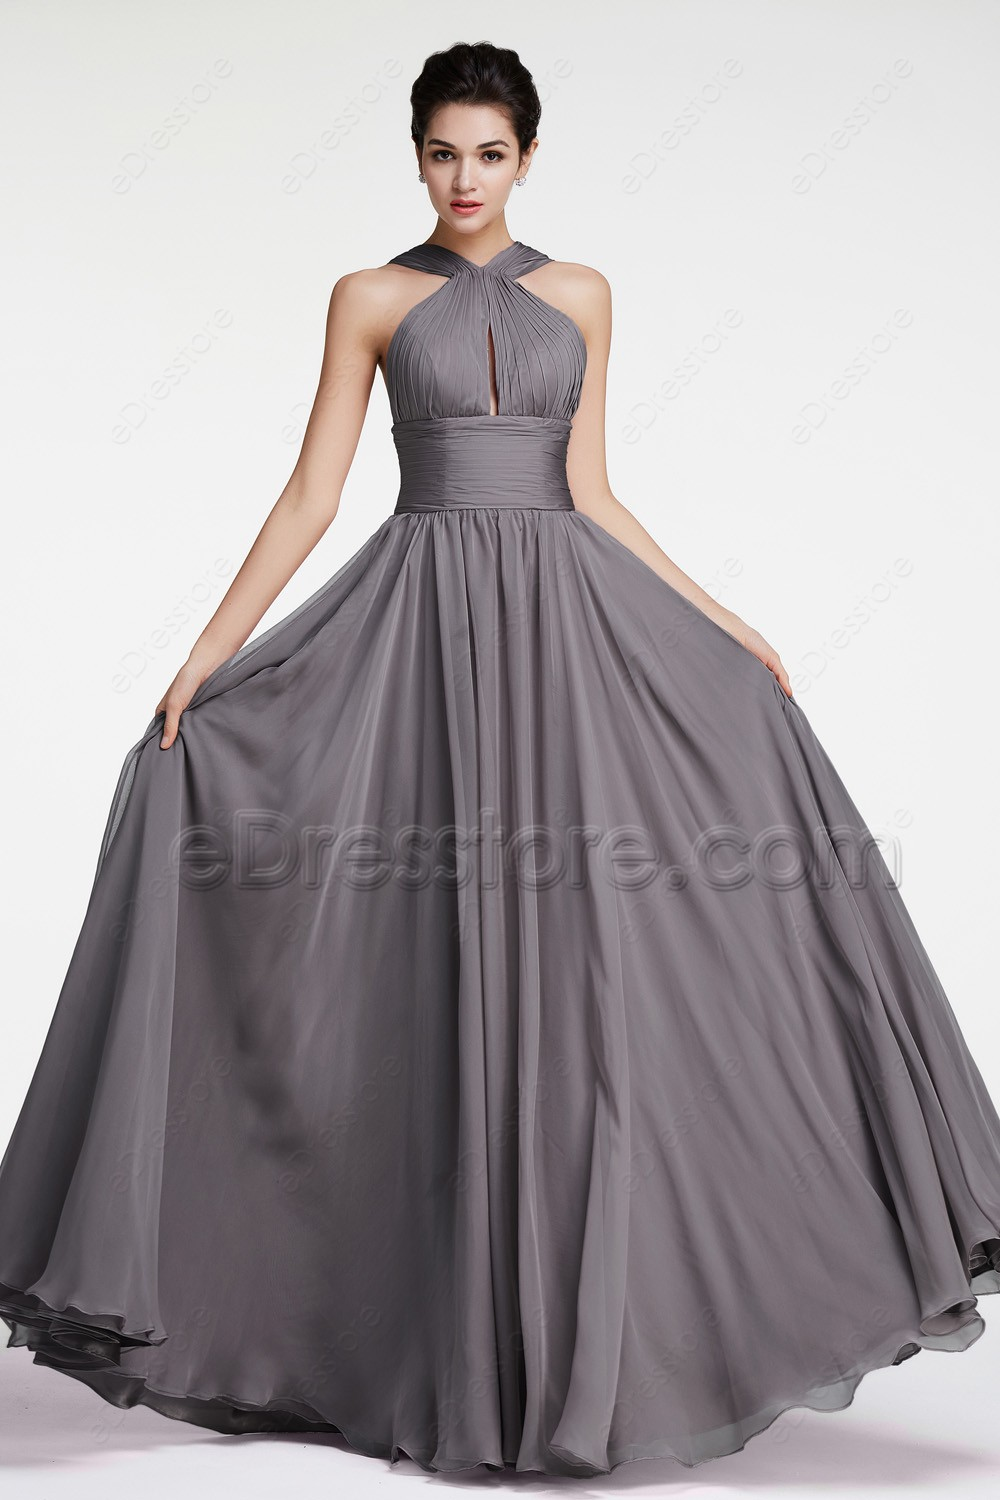 Halter charcoal bridesmaid dresses for Charcoal dresses for weddings